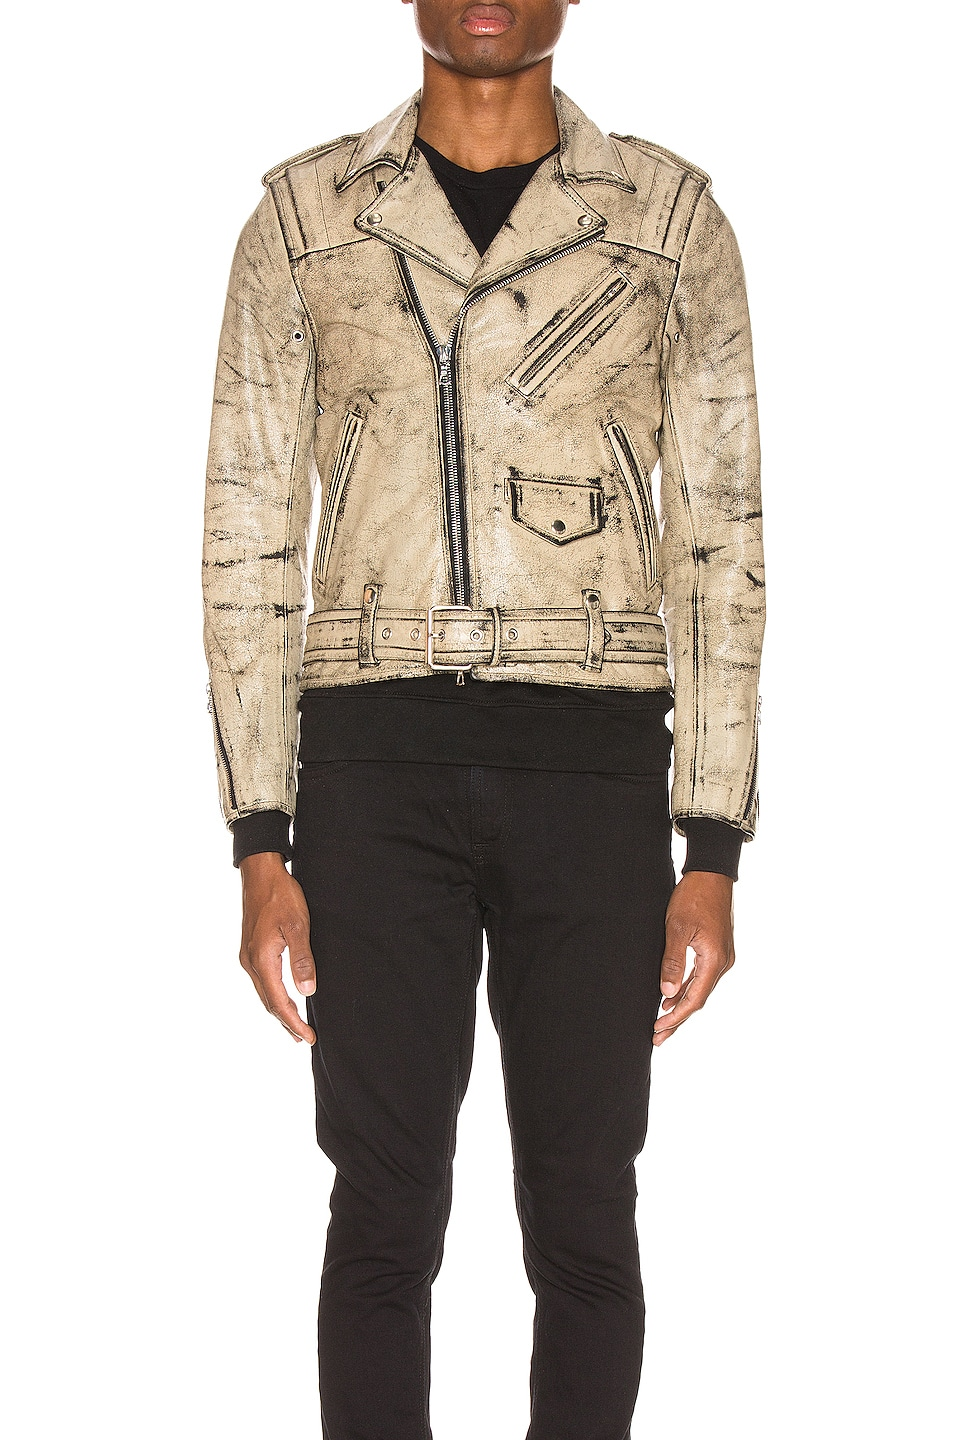 Image 2 of JOHN ELLIOTT x Blackmeans Rider's Jacket in Black & Ivory Paint